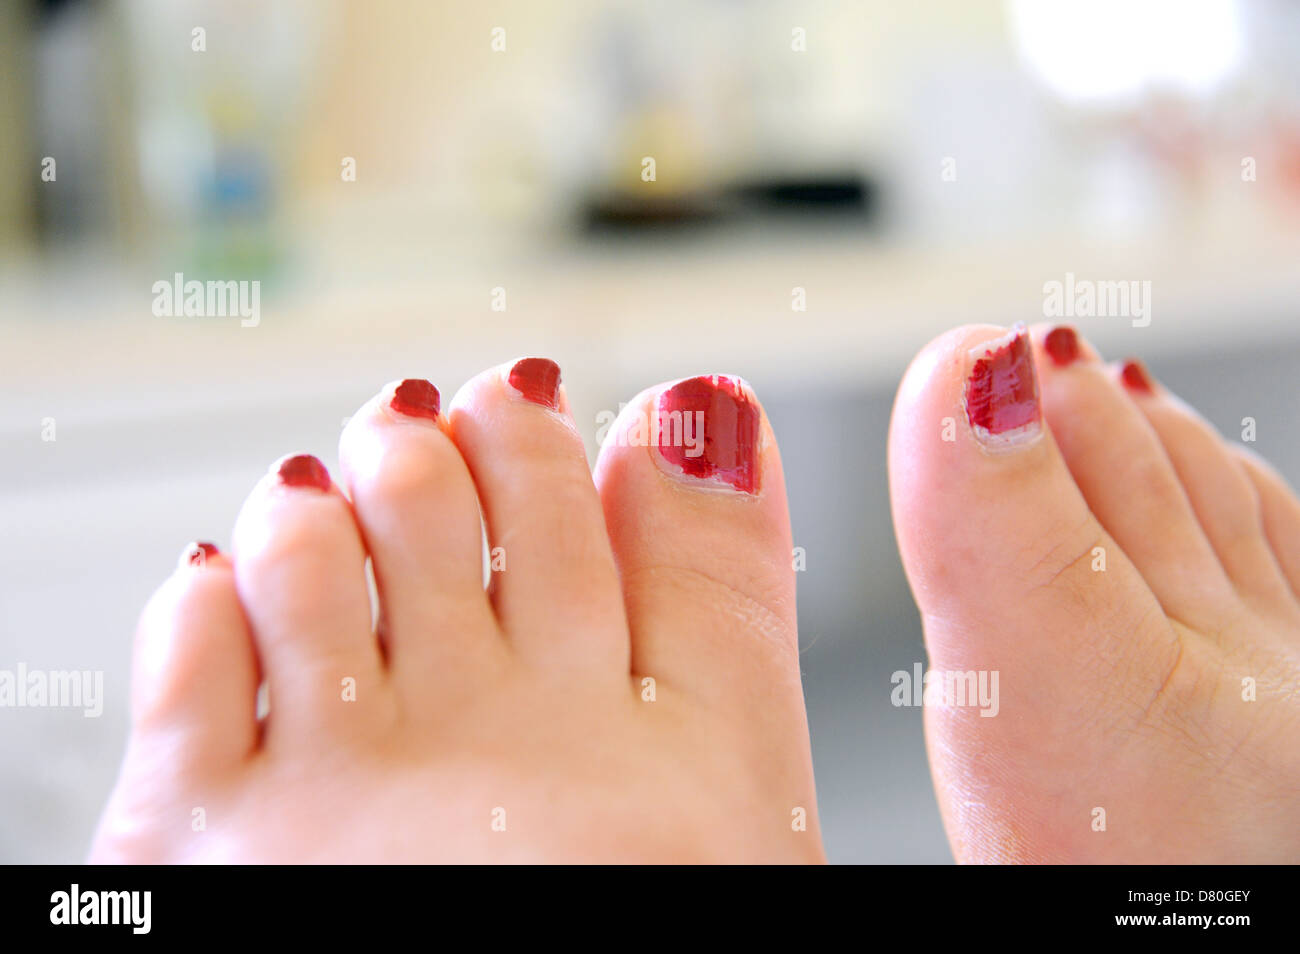 Female feet with red painted toe nails sticking out of the end of ...